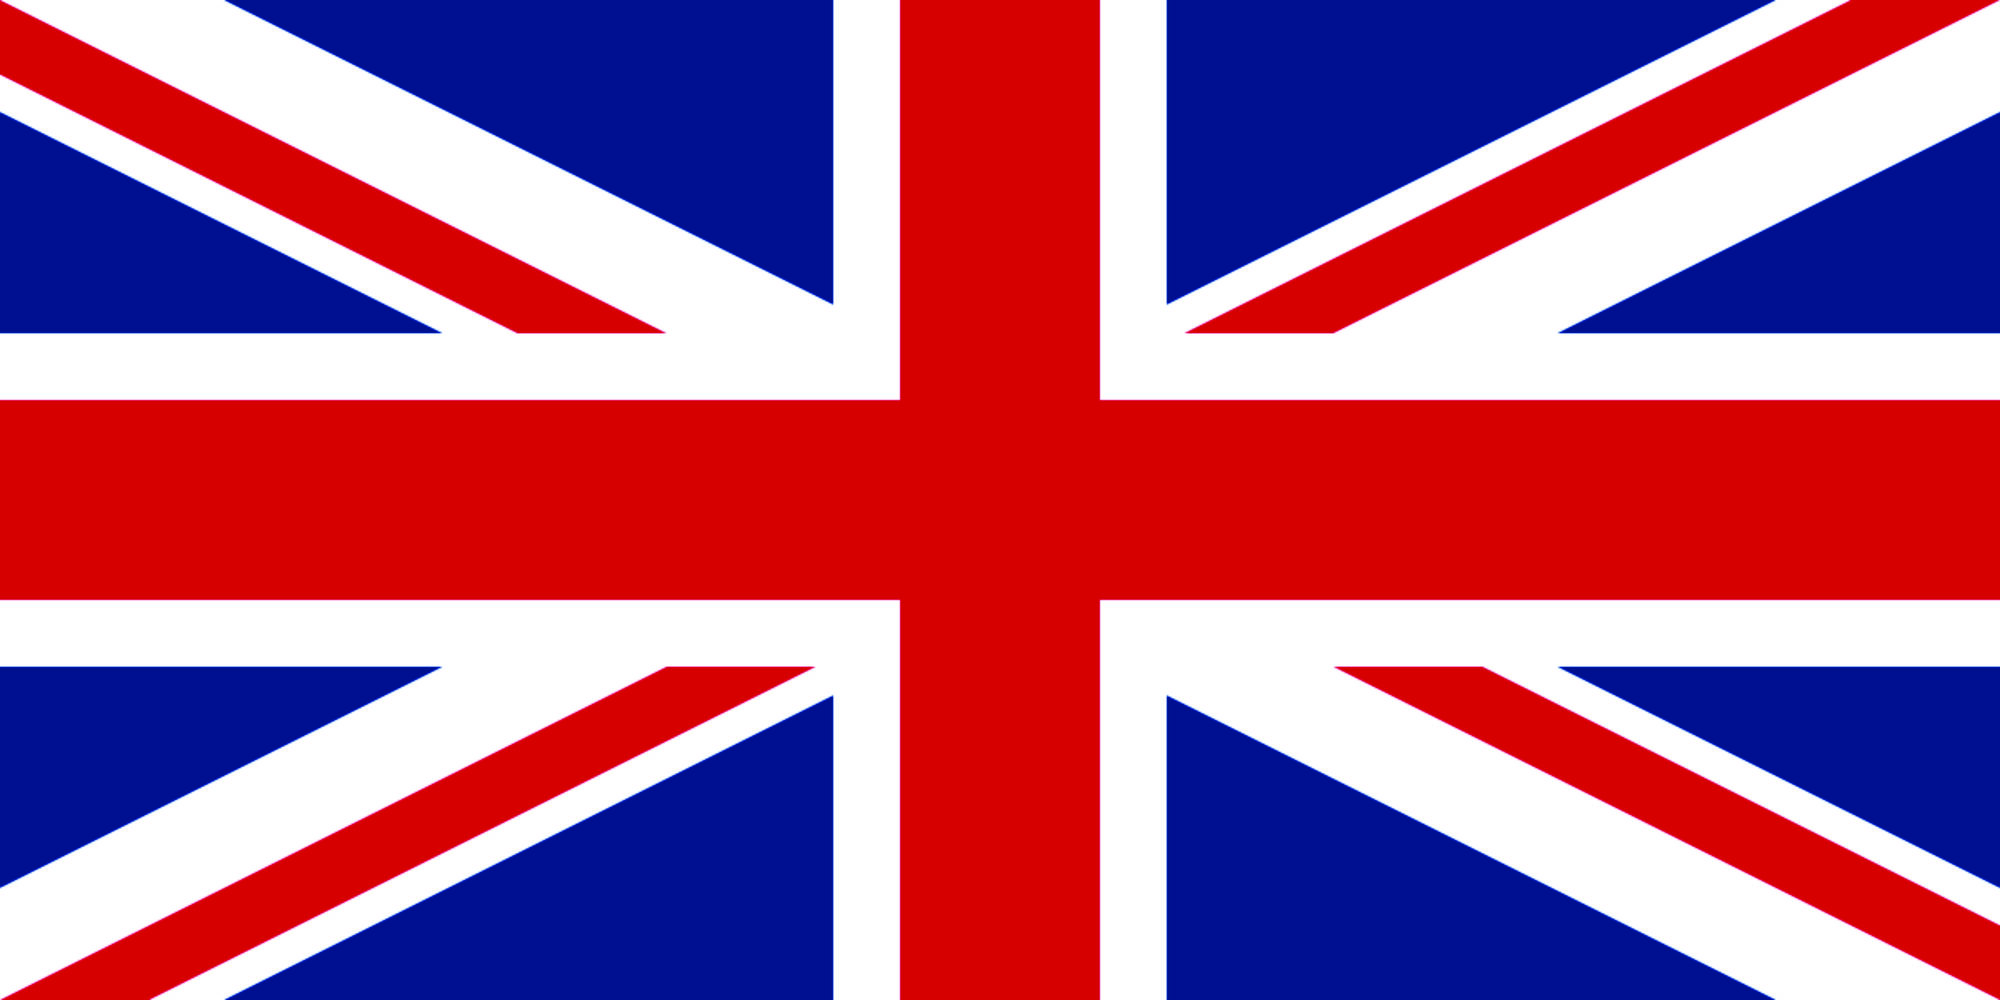 United Kingdom | Prepaid Data SIM Card Wiki | FANDOM powered